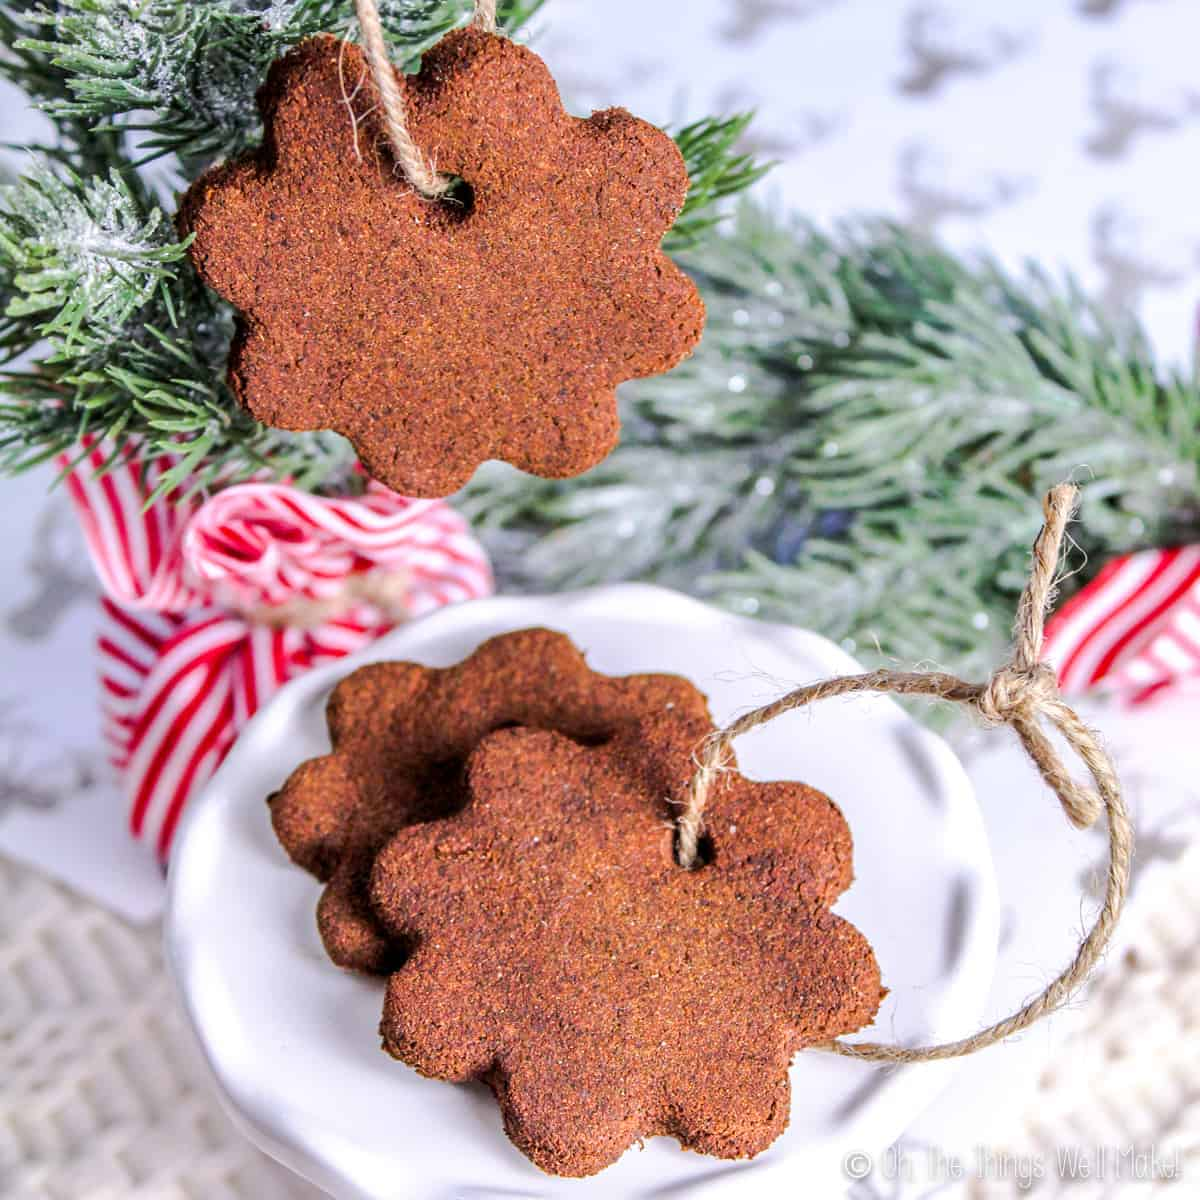 3 homemade applesauce cinnamon ornaments, one hanging from a tree and two on a white plate